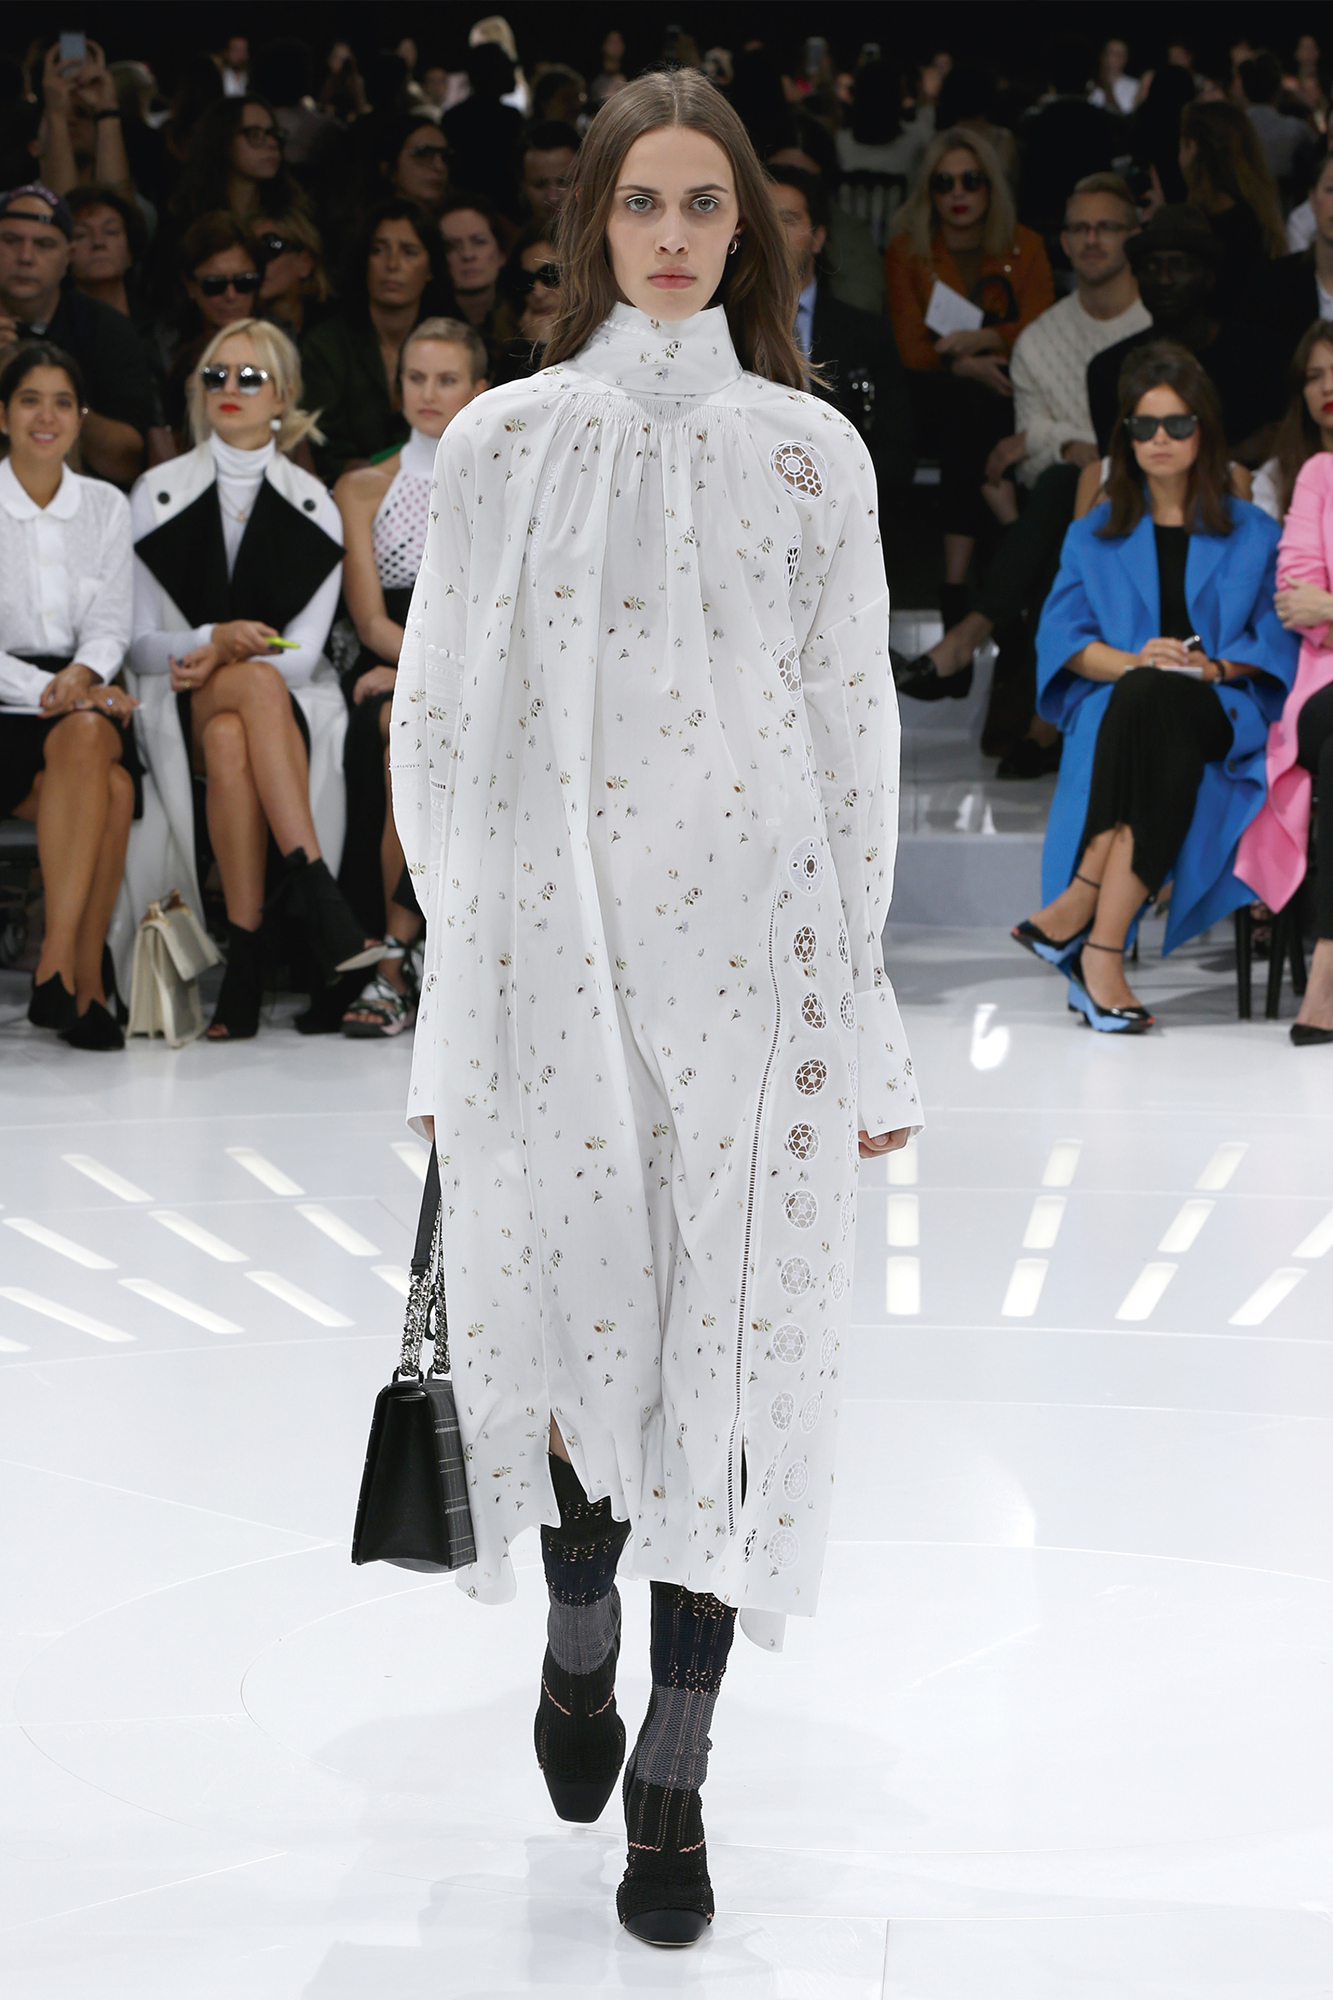 New Western Fashion Christian Dior Ready To Wear Dresses Spring Summer Collection 2015 (12)